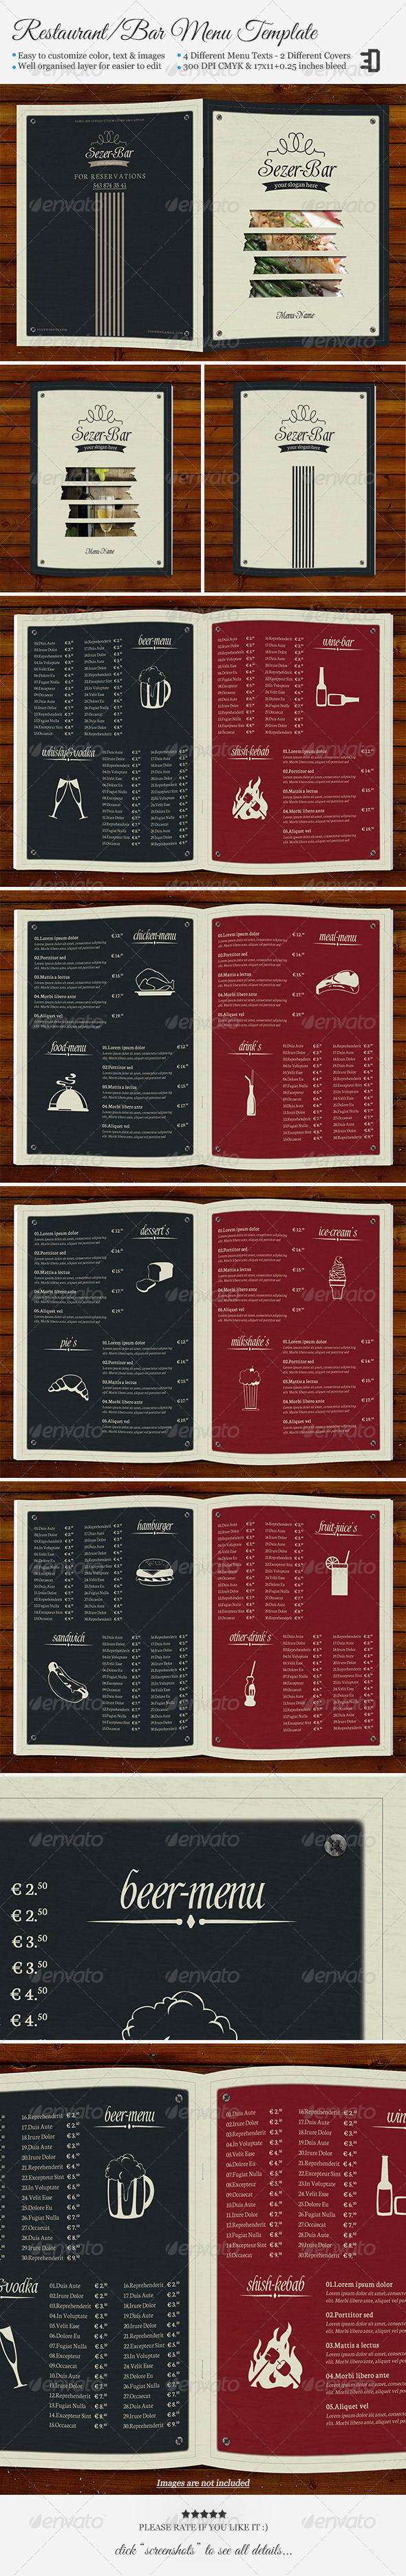 GraphicRiver Restaurant Bar Menu Template 5658695